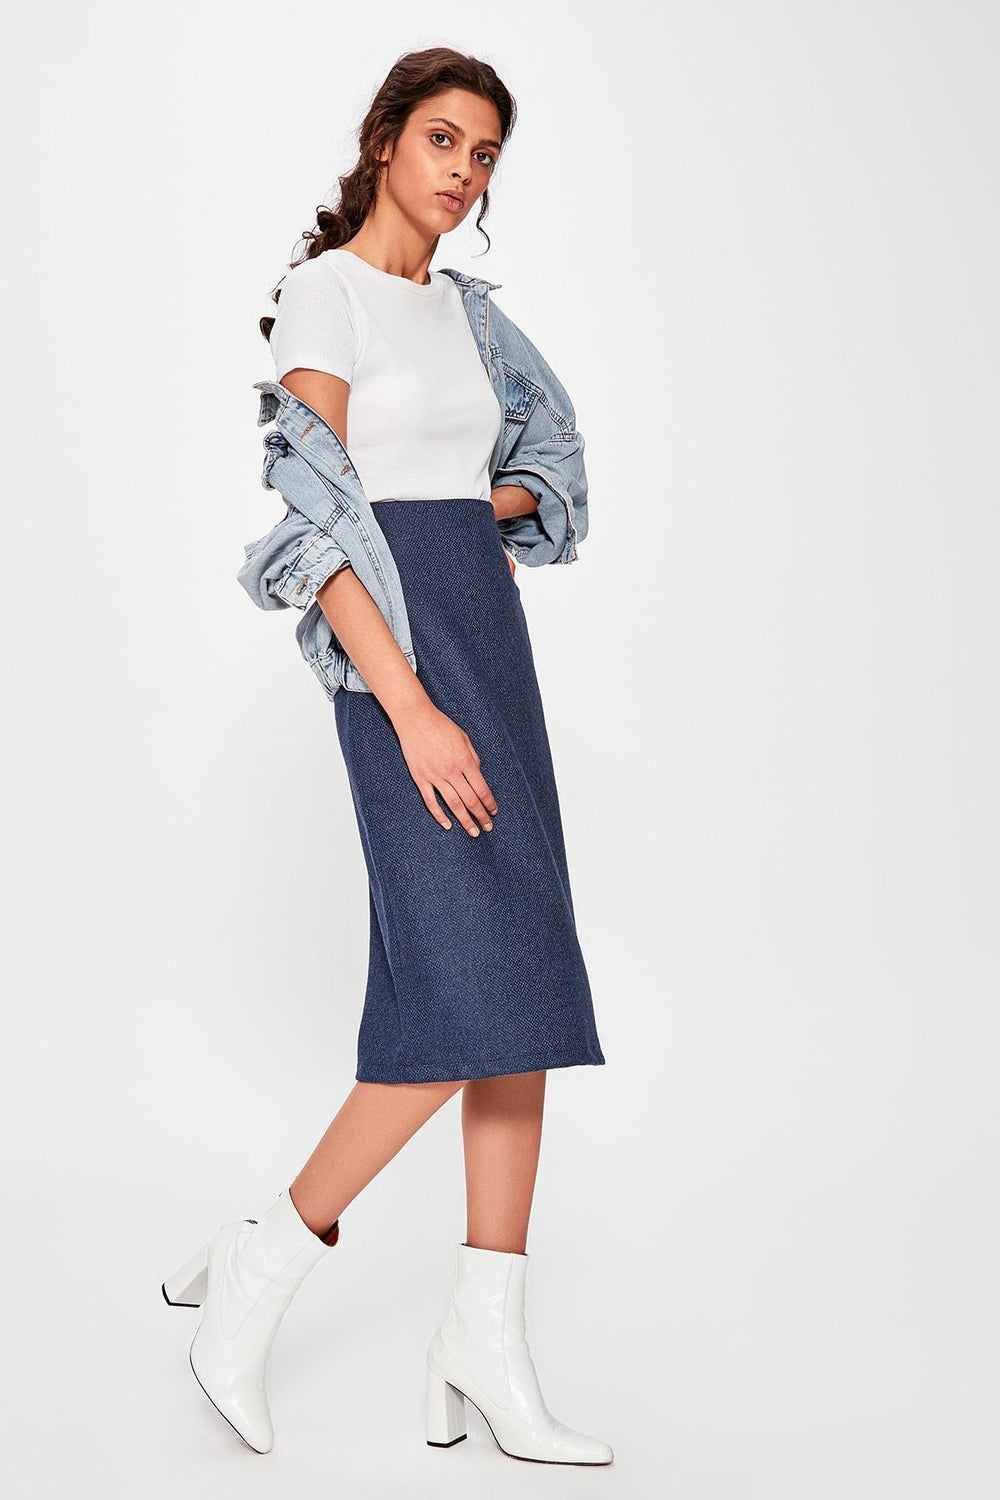 Blue Midi Skirt - Top Maxy